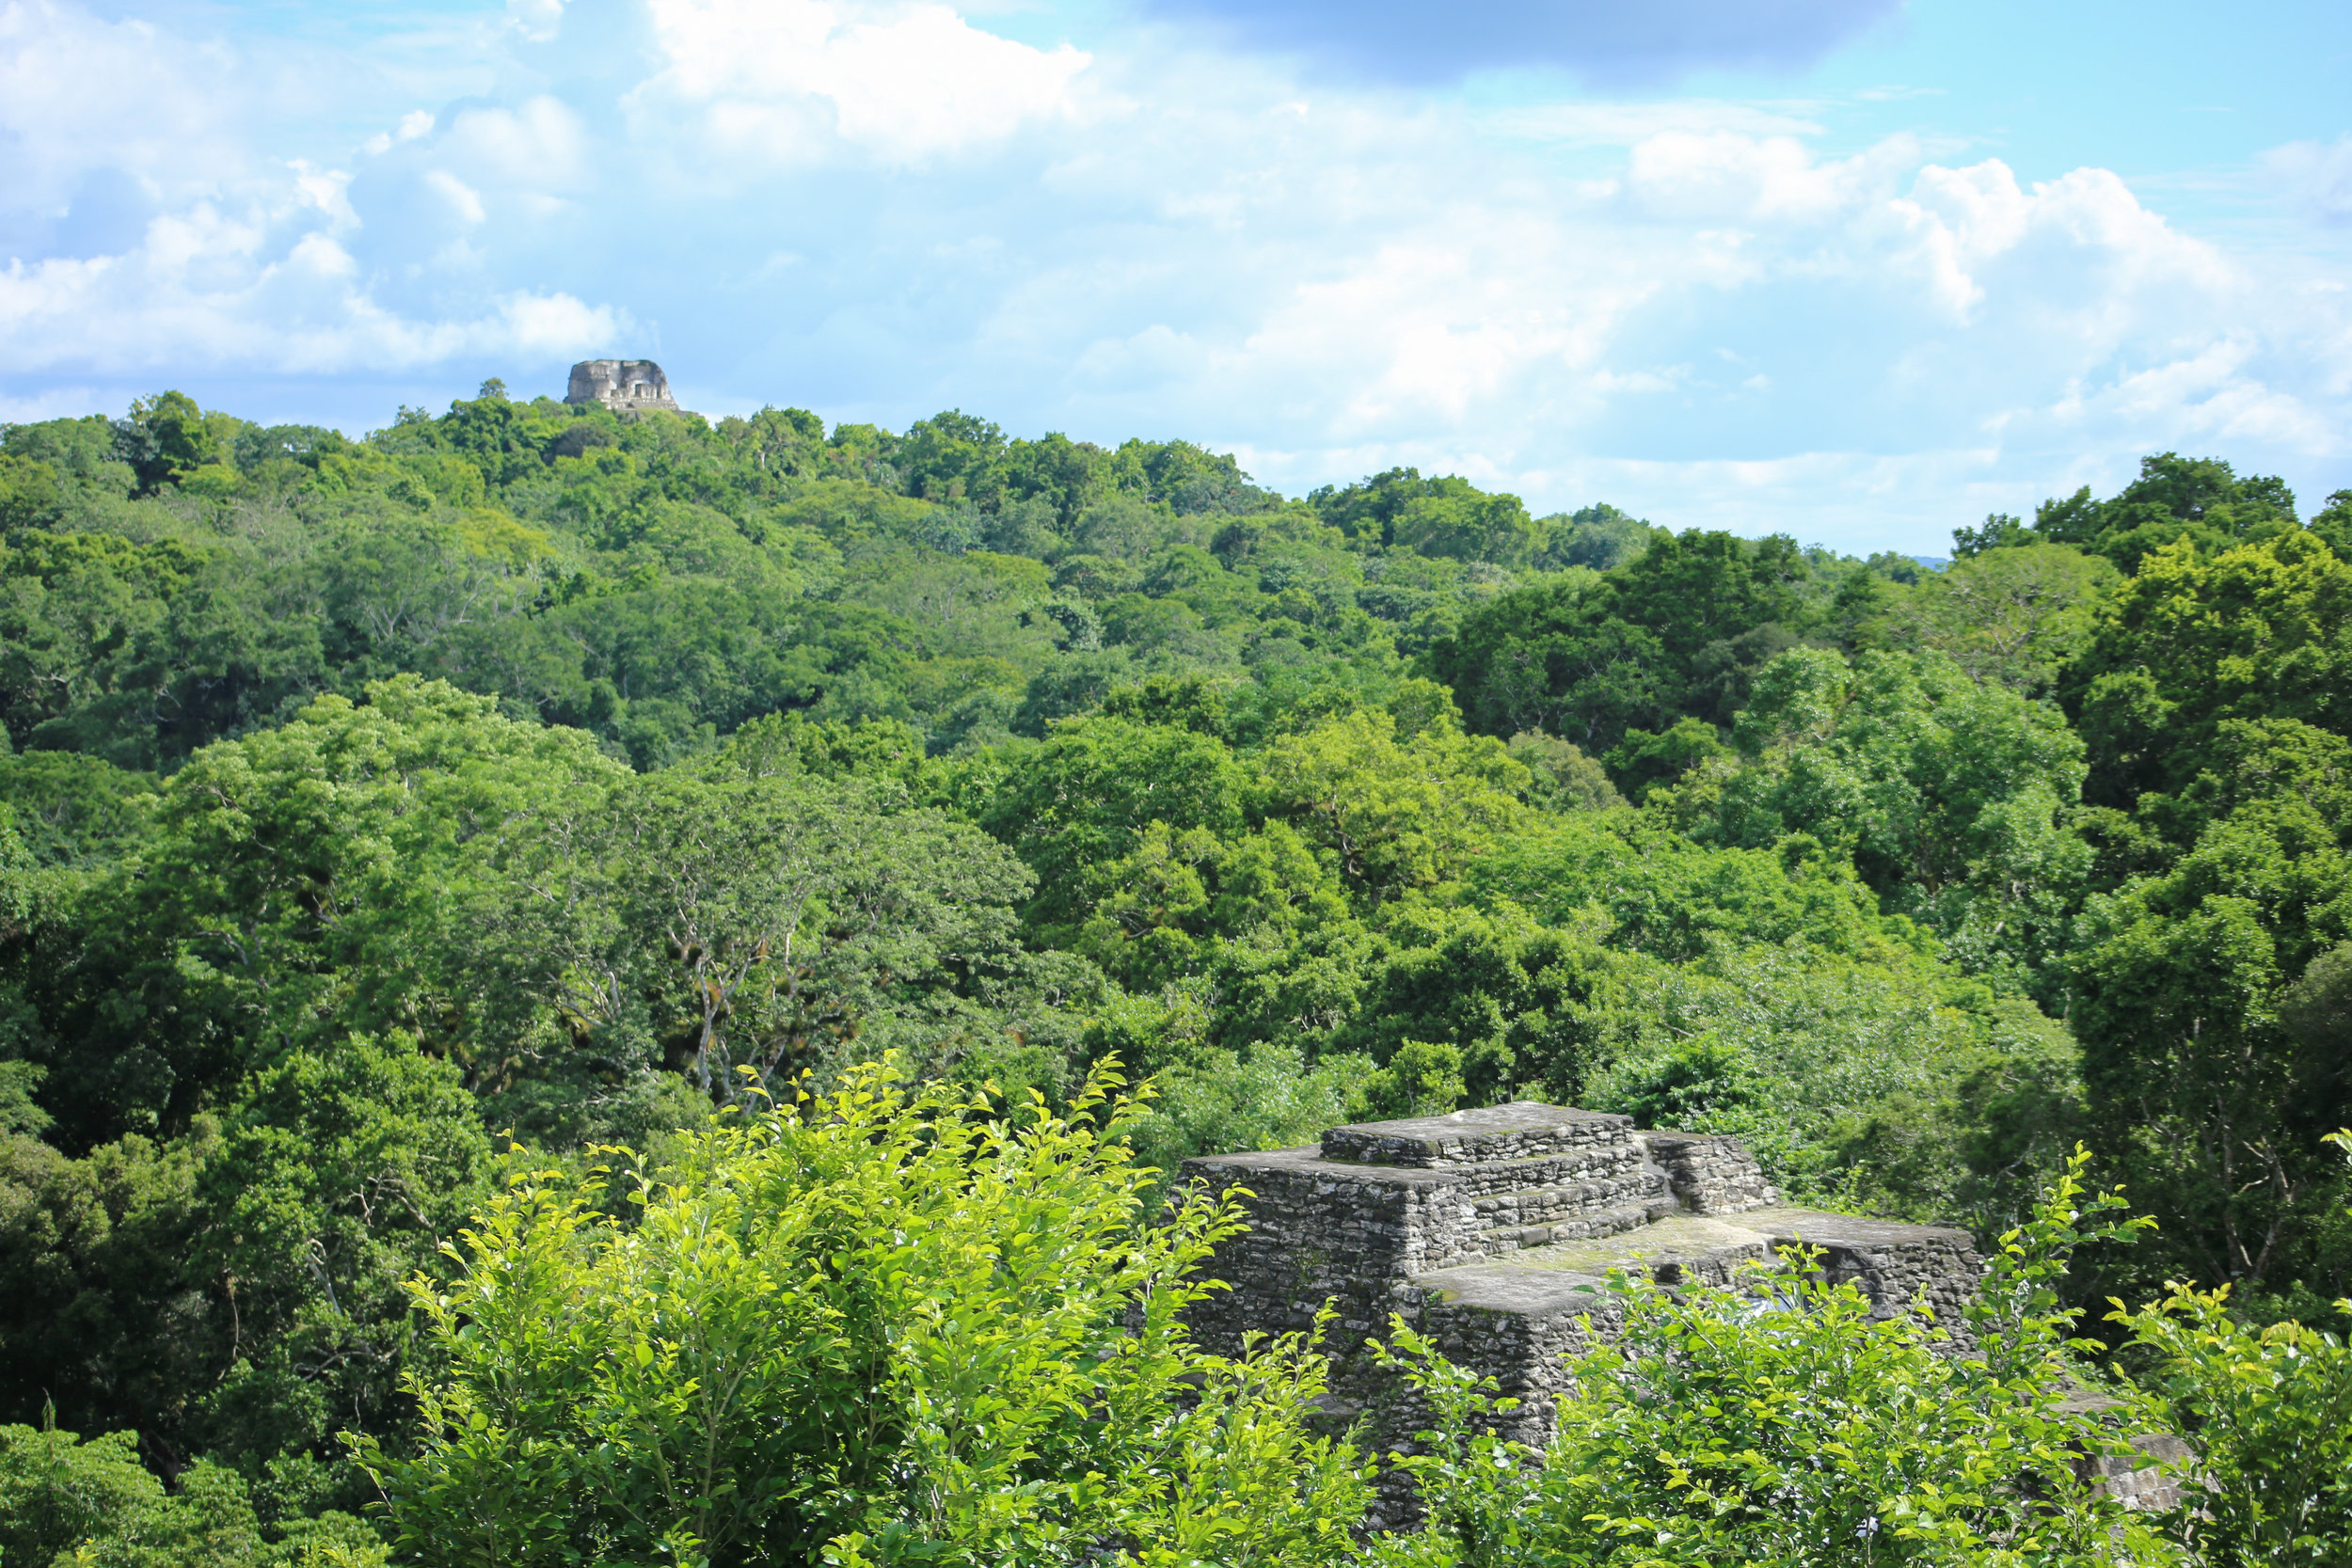 View above the canopy of the North Acropolis.